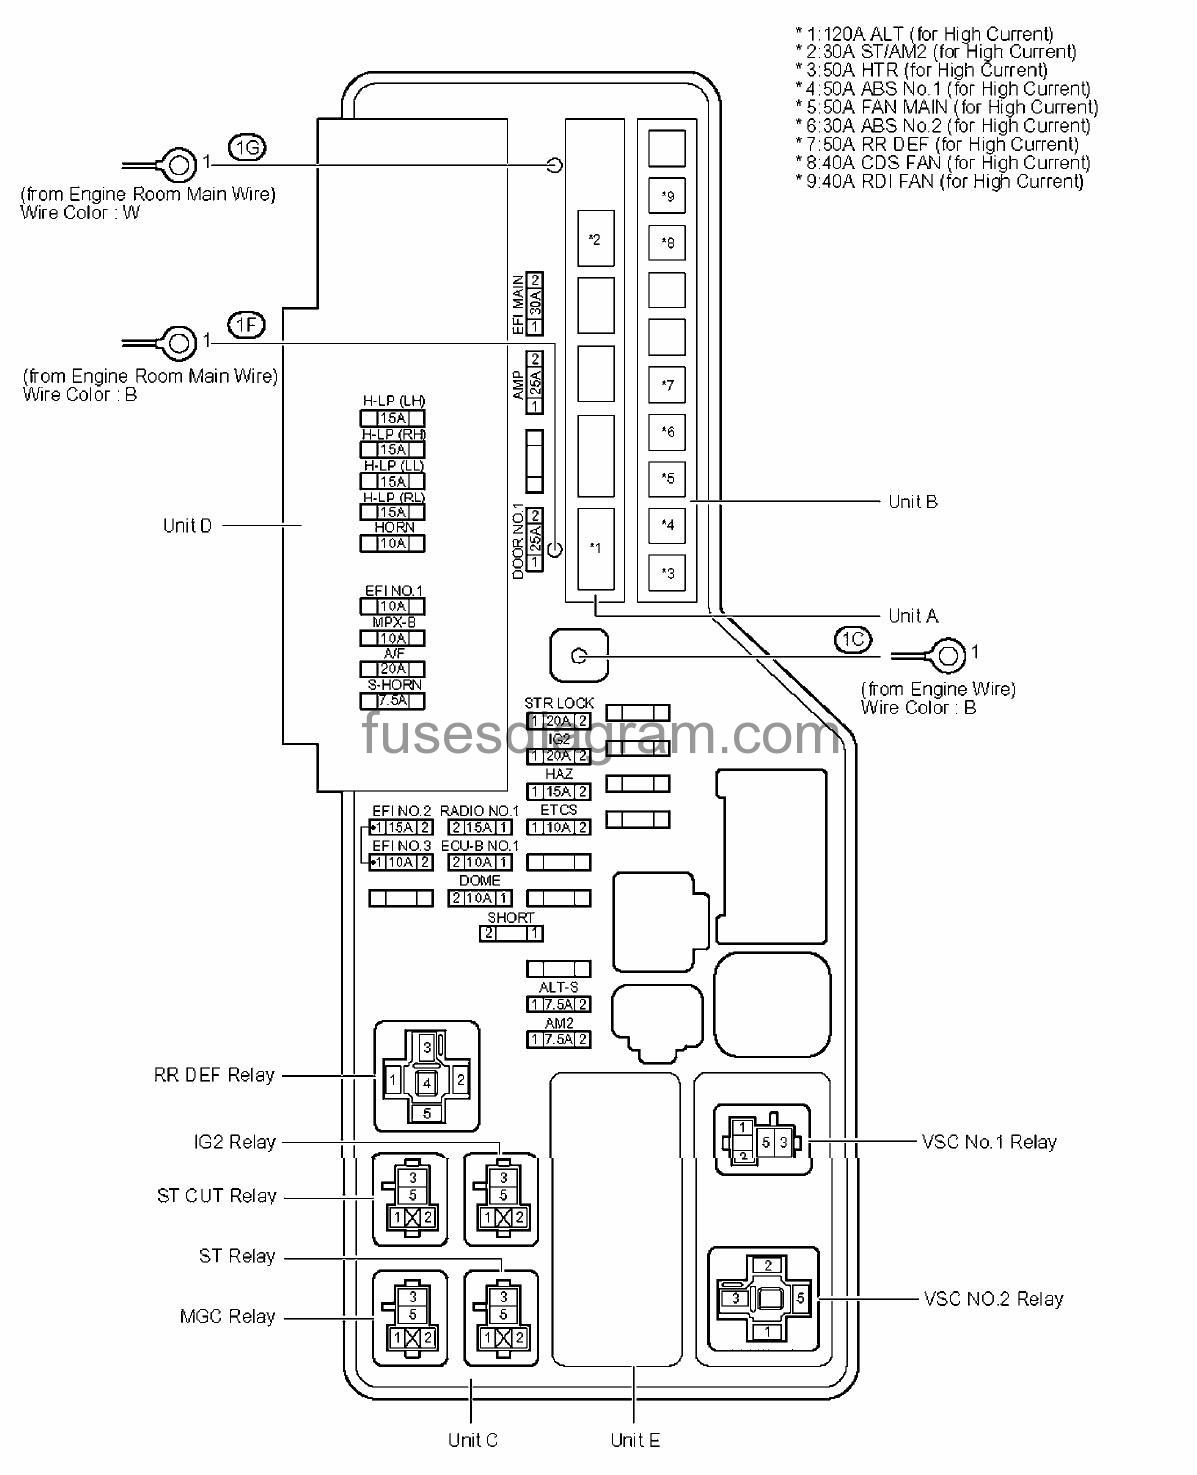 [DIAGRAM_1JK]  4C3434E 98 Camry Fuse Box Diagram | Wiring Library | 1998 Toyota Camry Fuse Box |  | Wiring Diagram Schematics